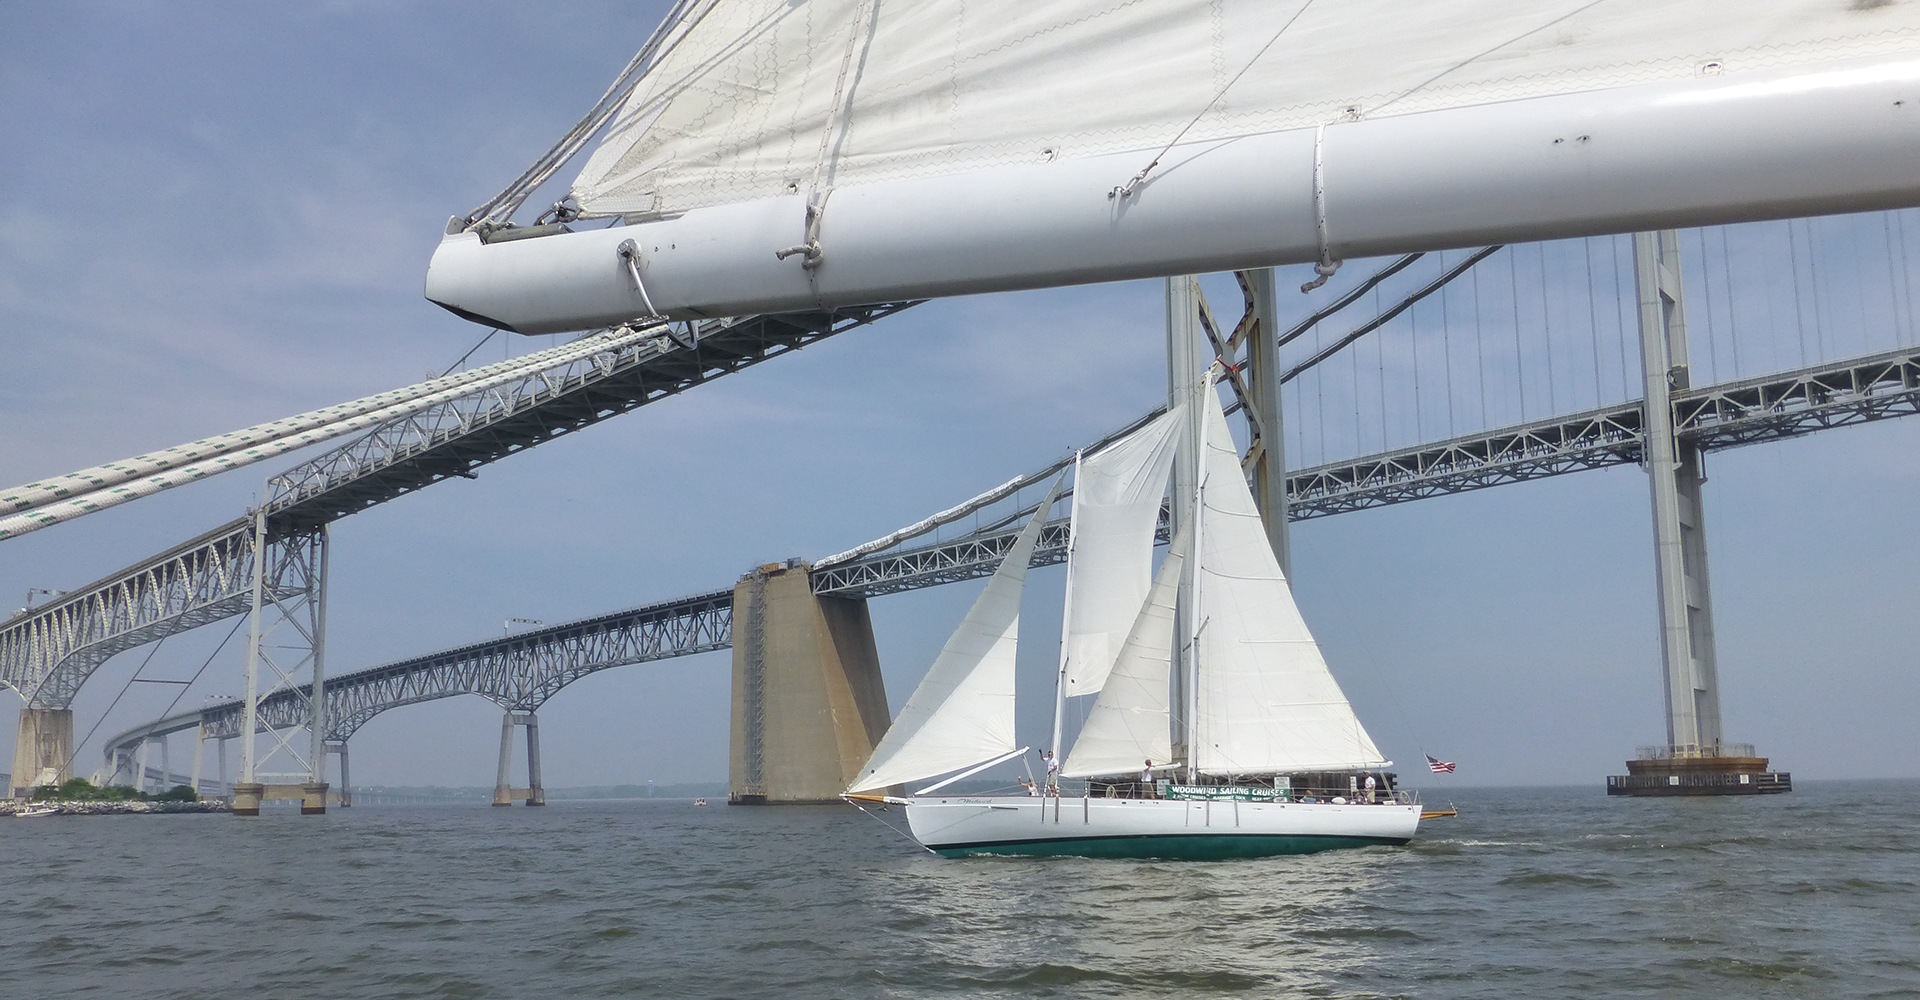 Looking from one schooner to the other schooner sailing in front of Bay Bridge